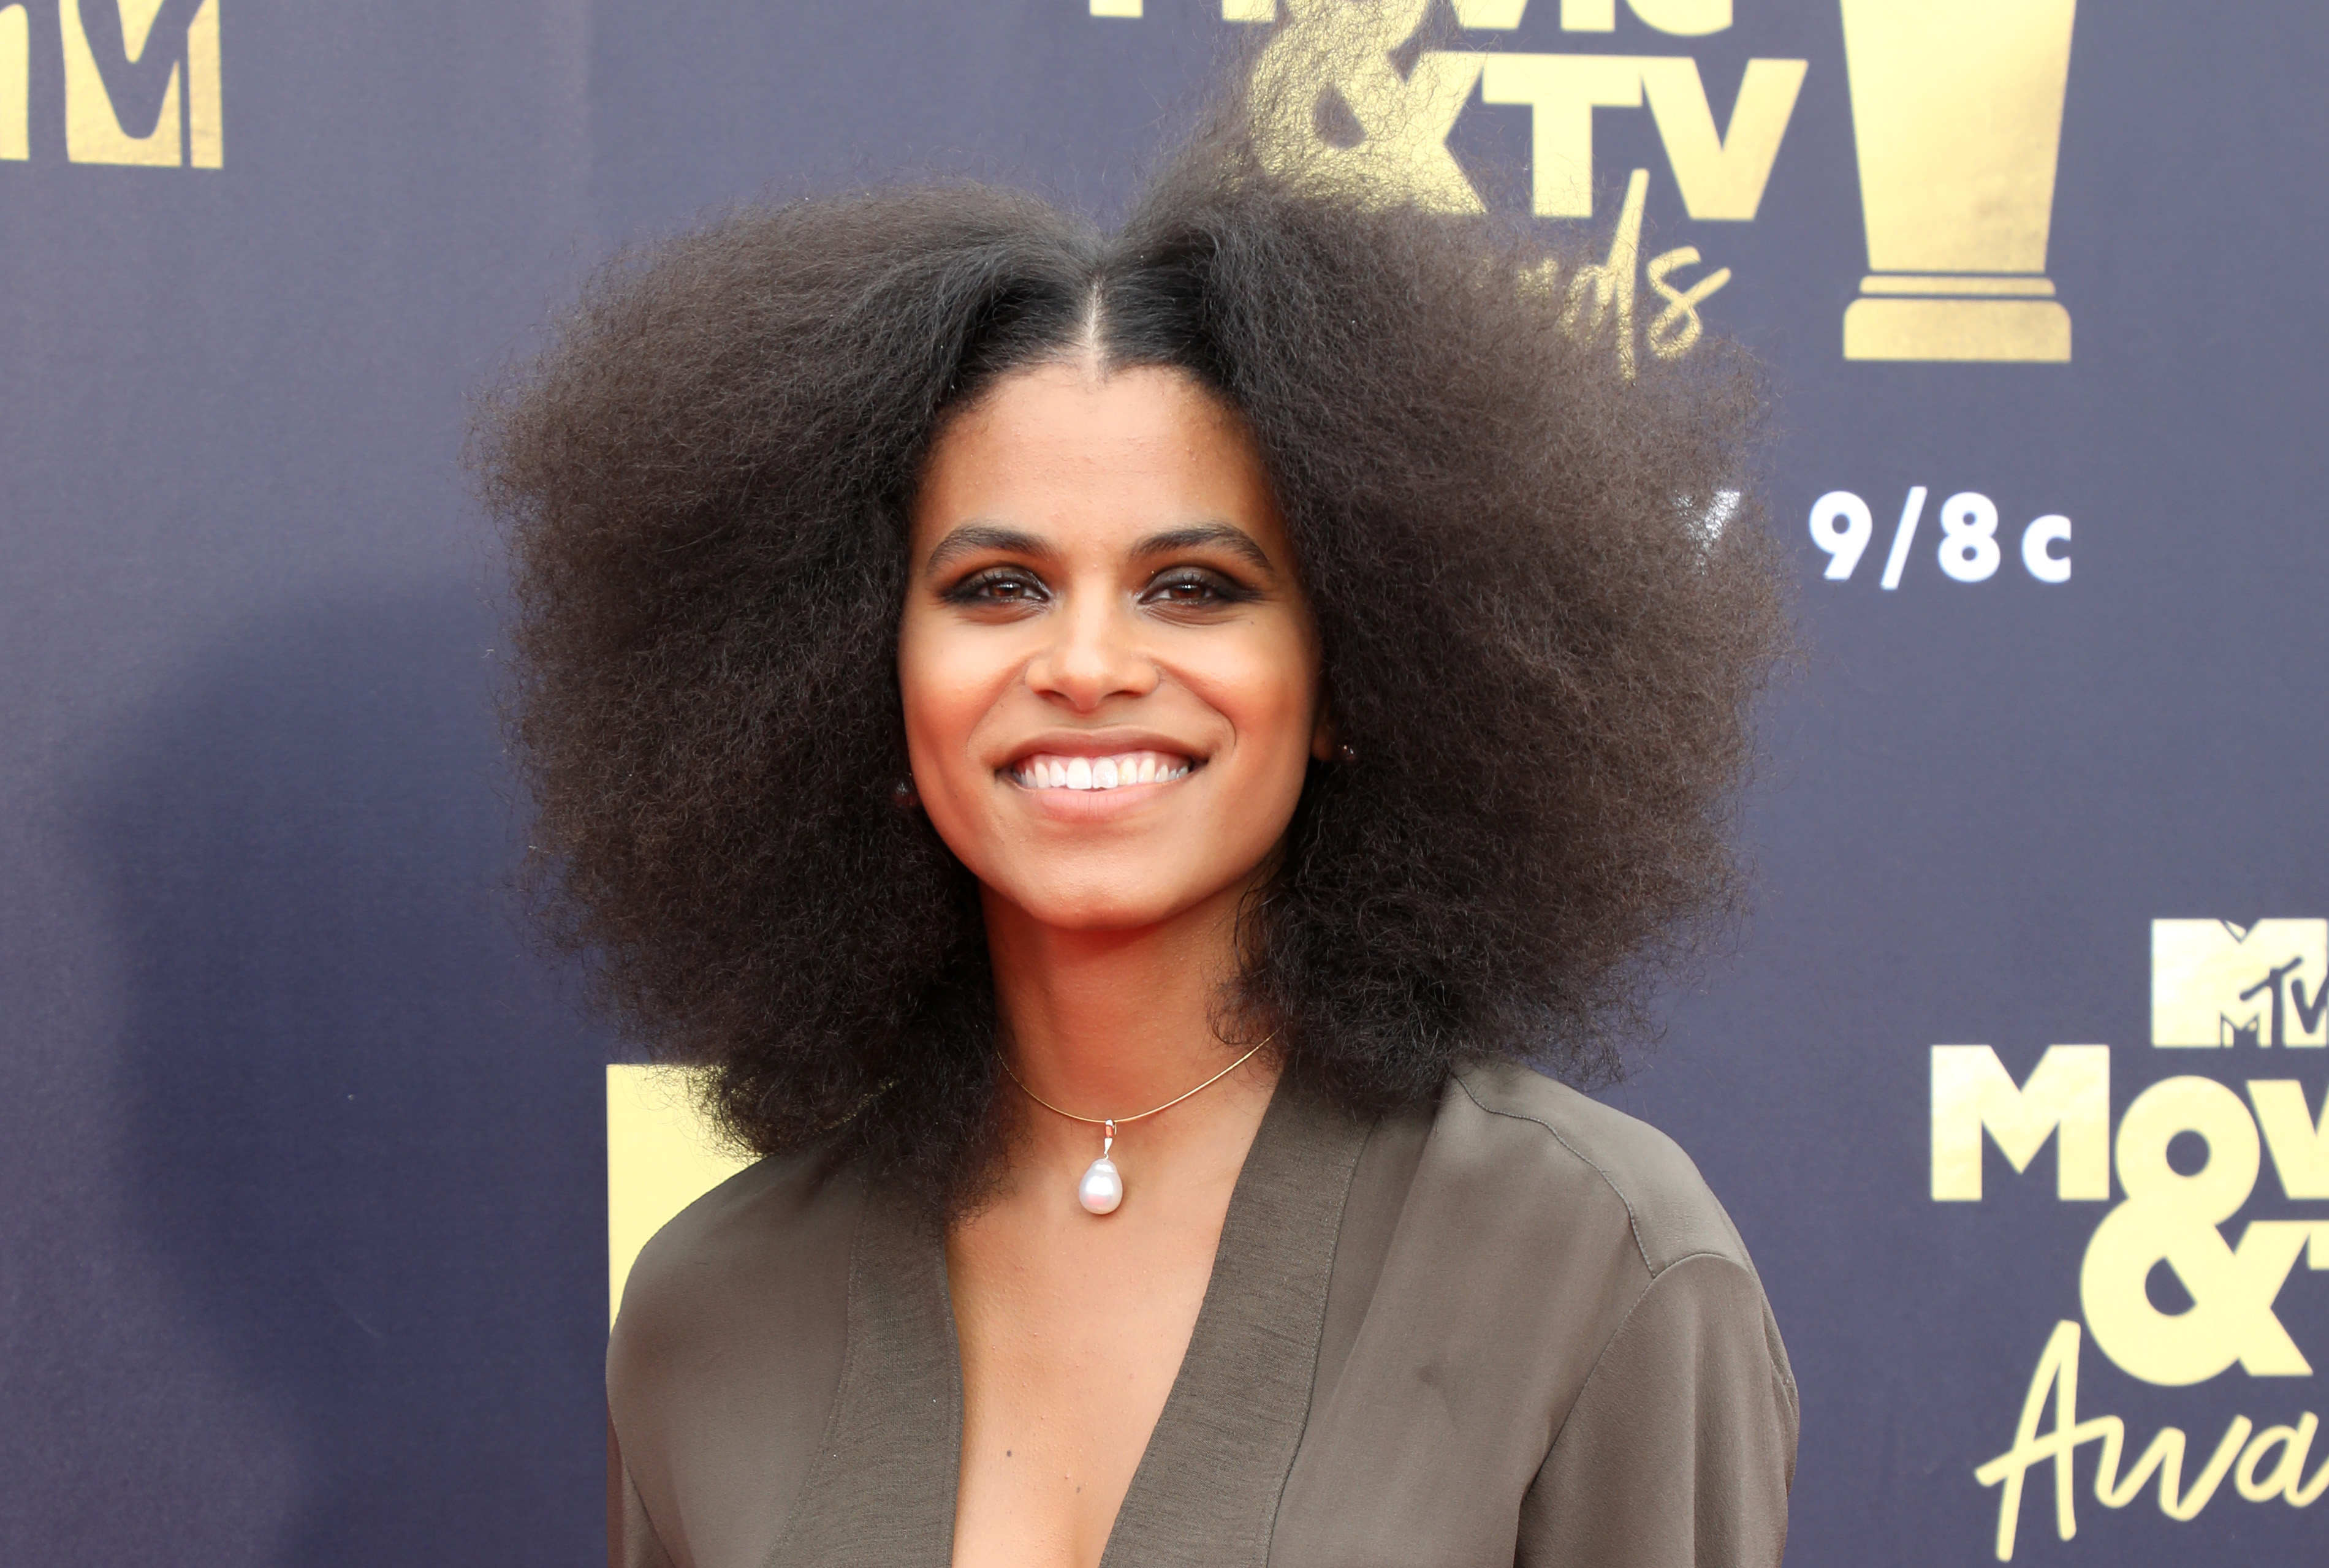 'The Joker': Todd Phillips Offers First Look at Zazie Beetz in Character as Sophie Dumond